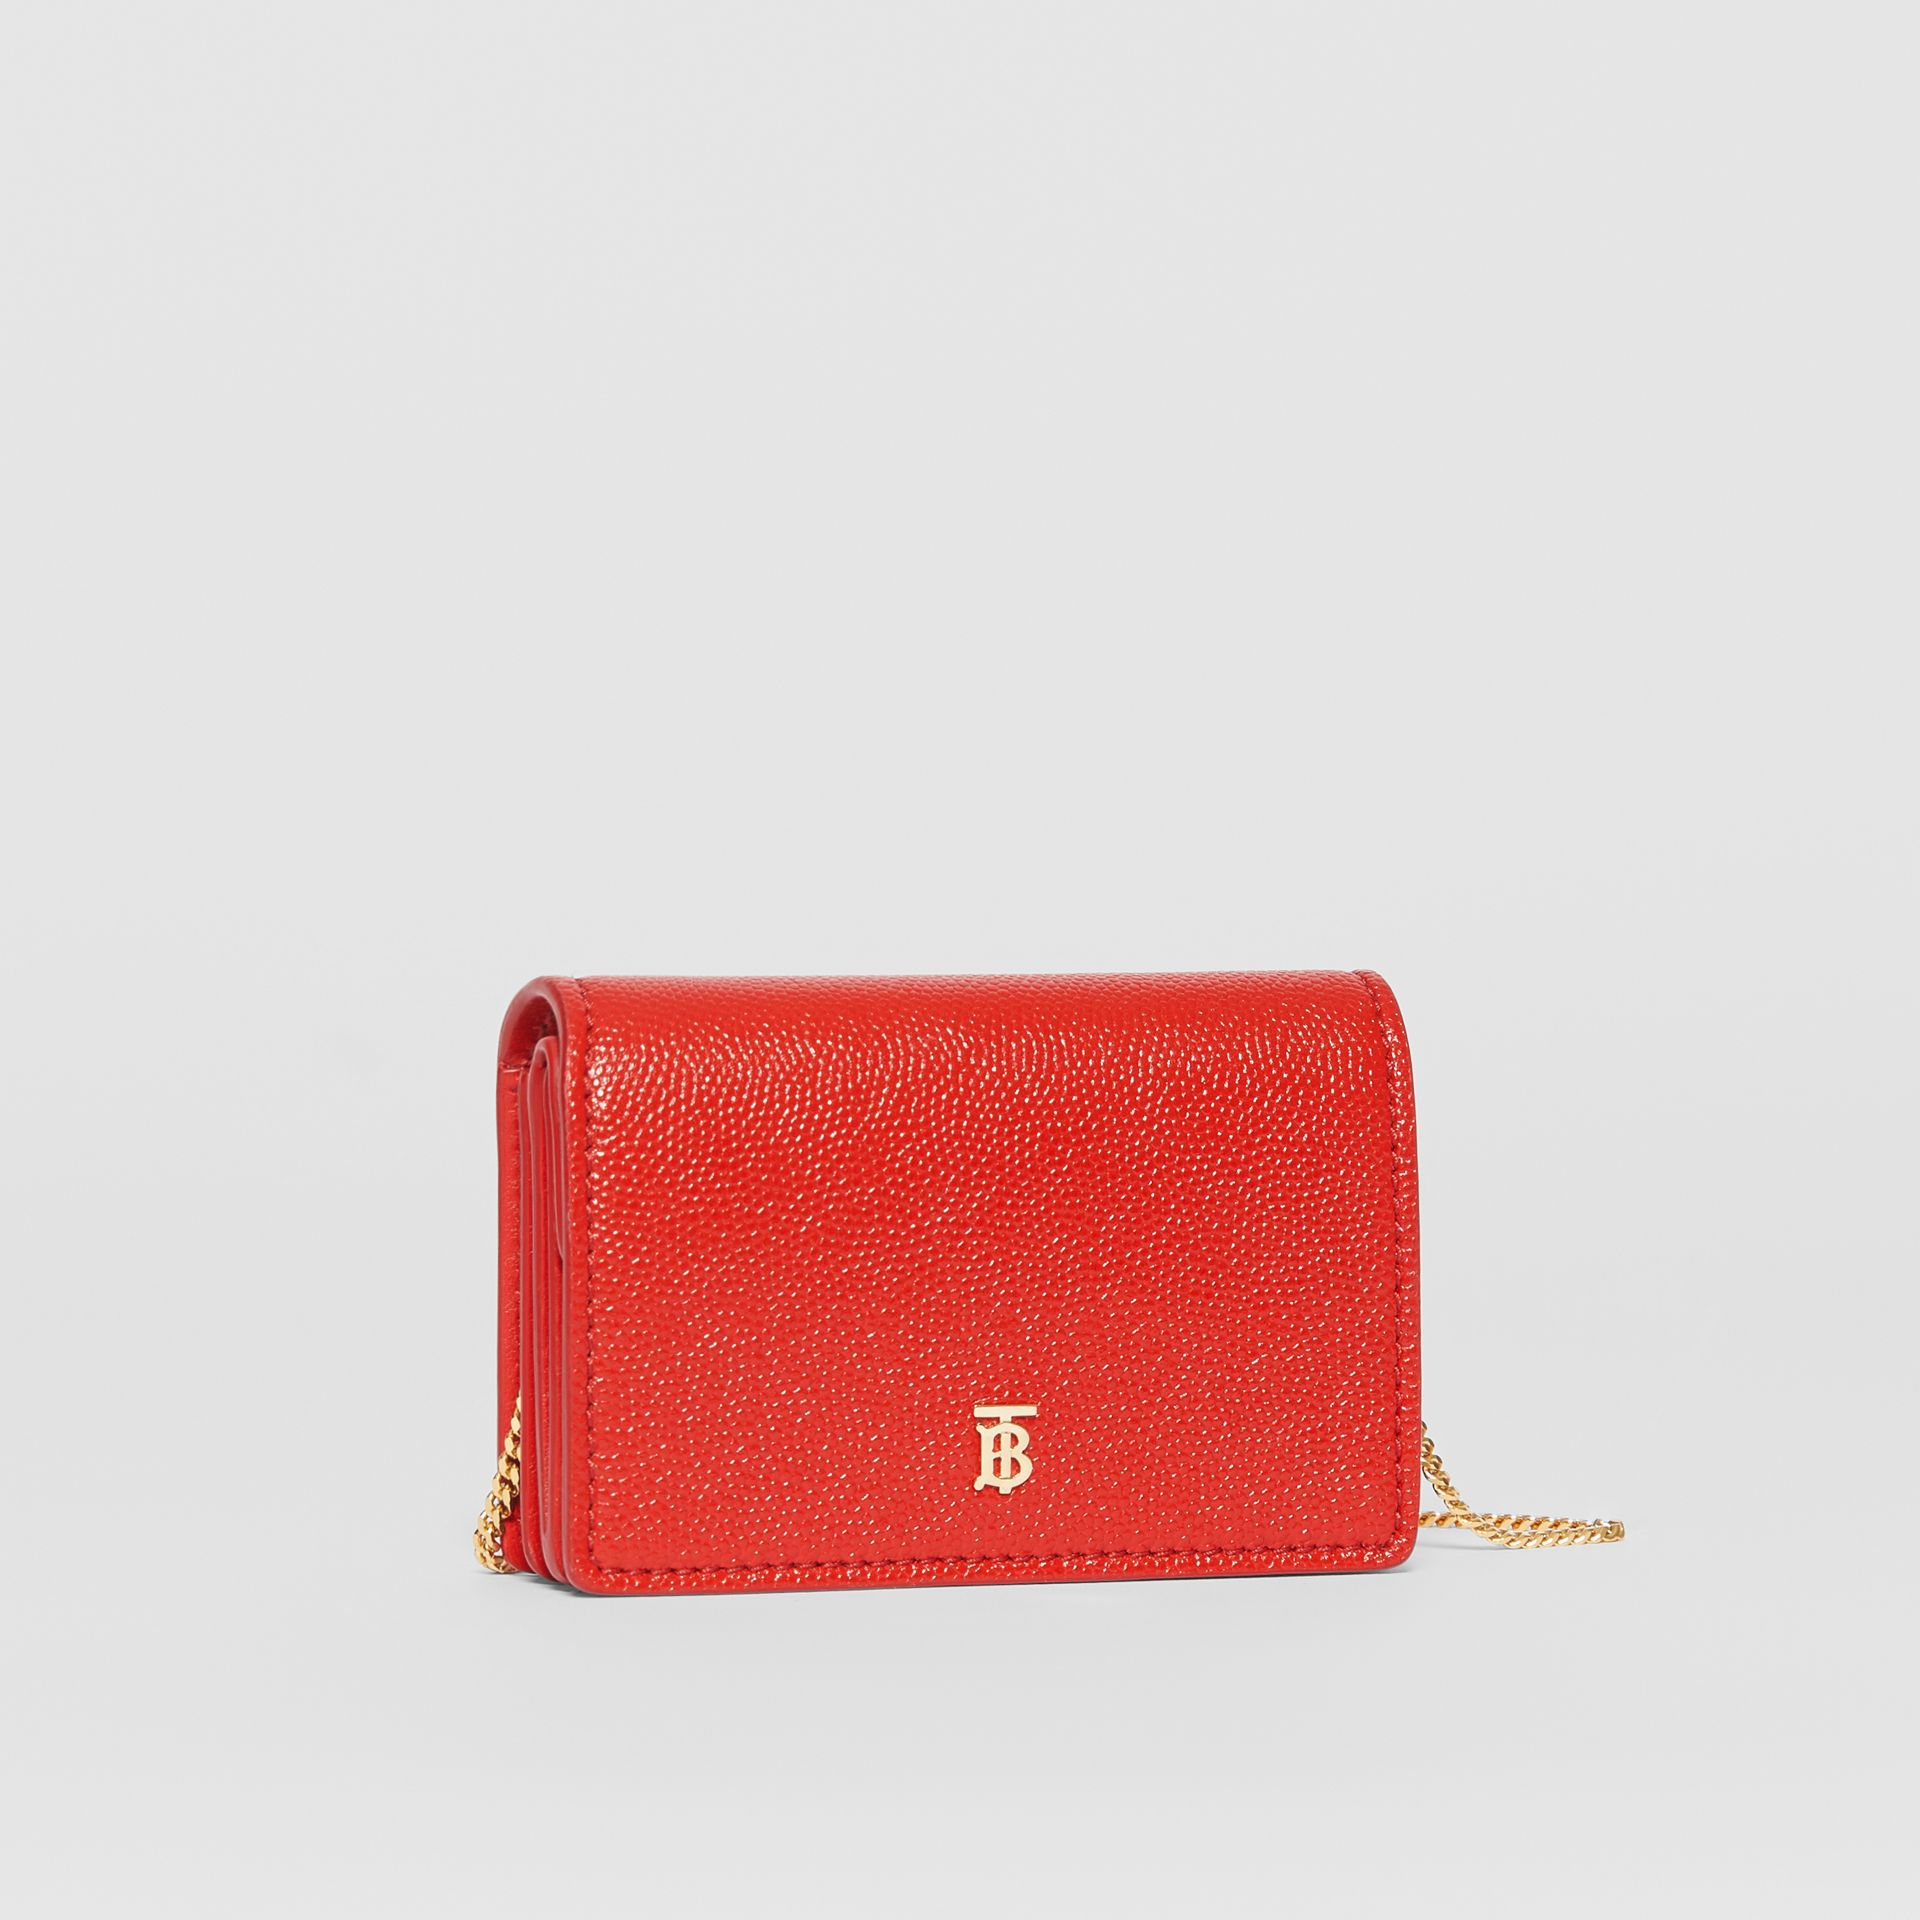 Grainy Leather Card Case with Detachable Strap in Bright Red - Women | Burberry - gallery image 6